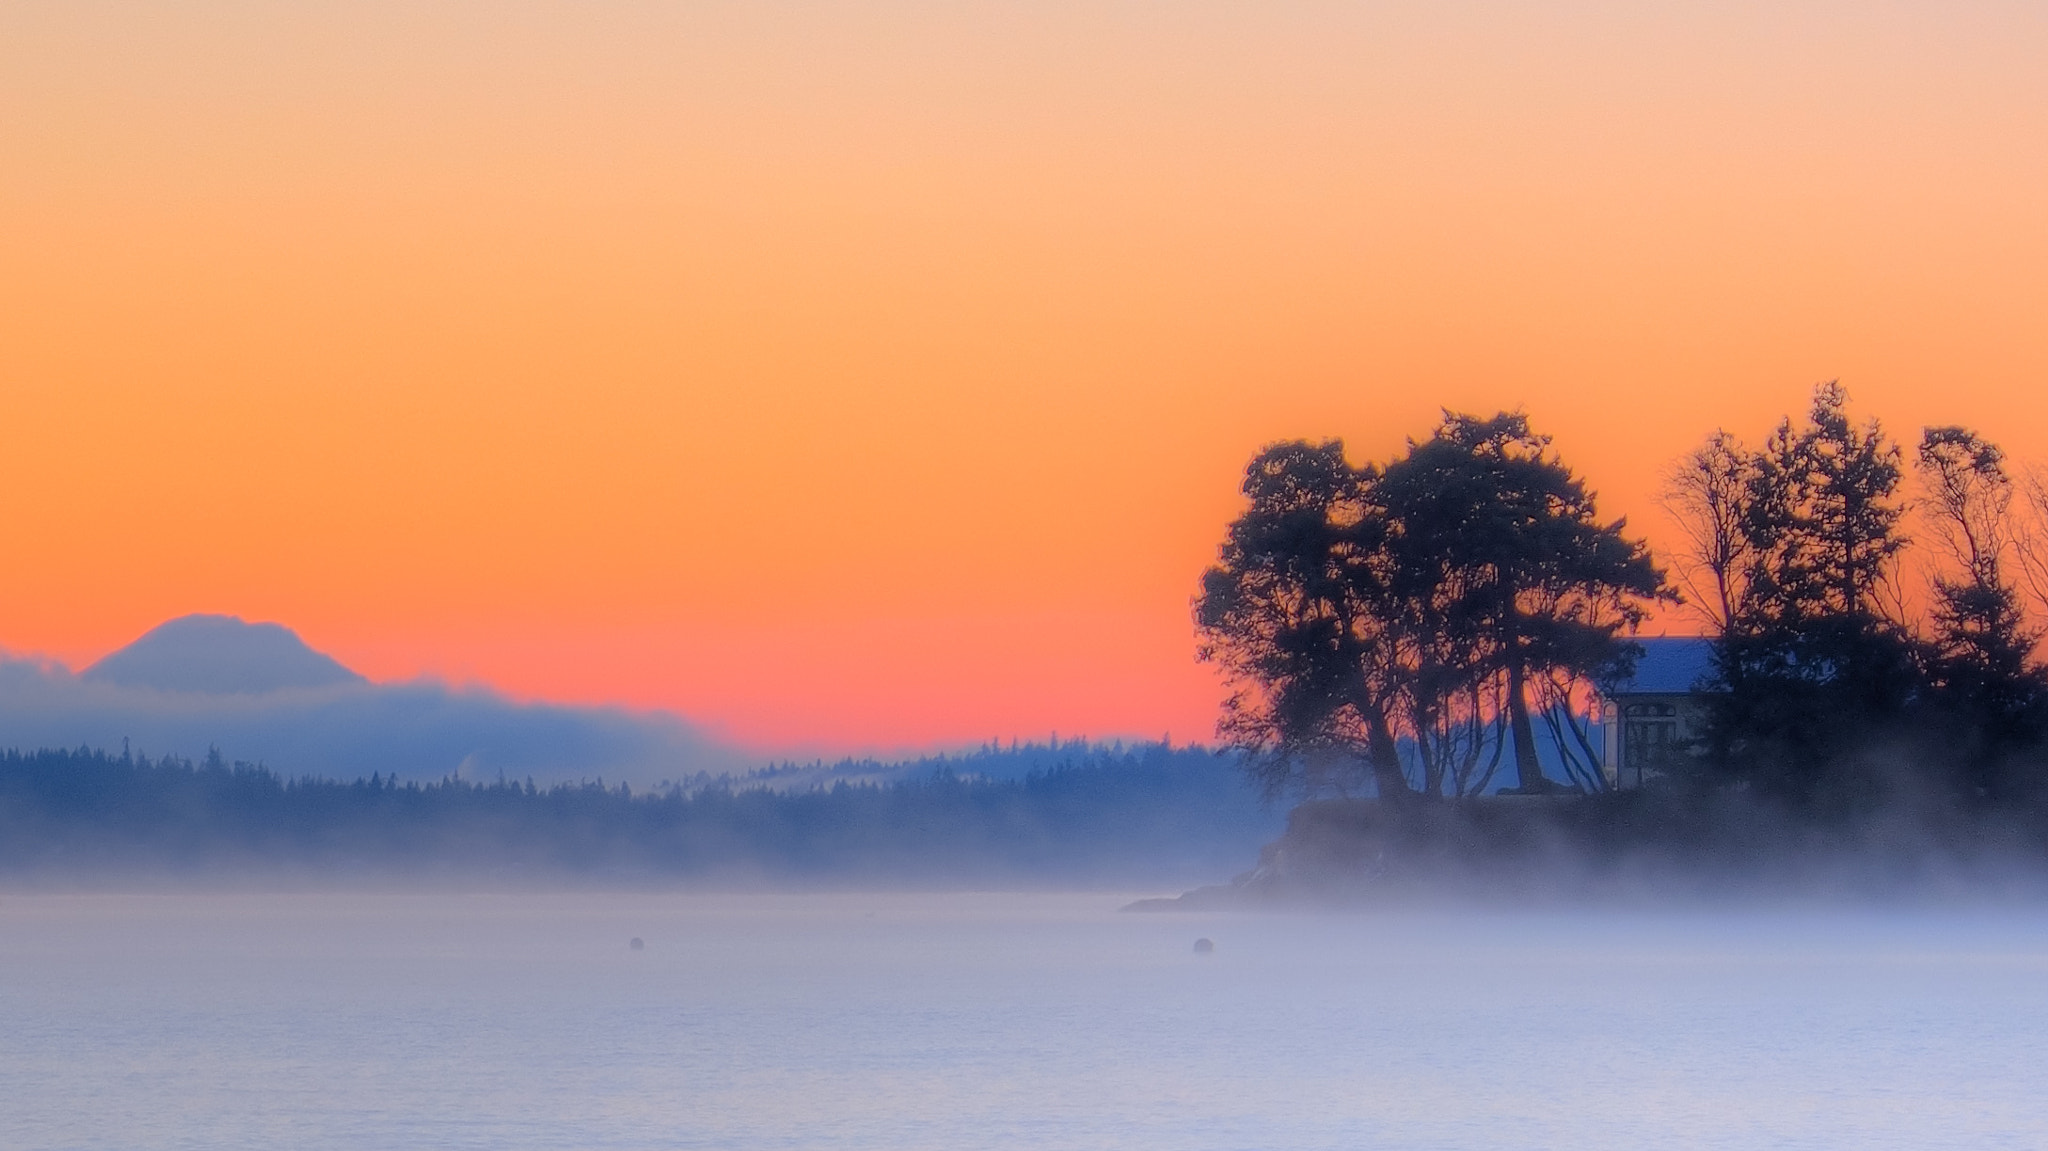 Photograph Just Peachy by Pat Teglia on 500px